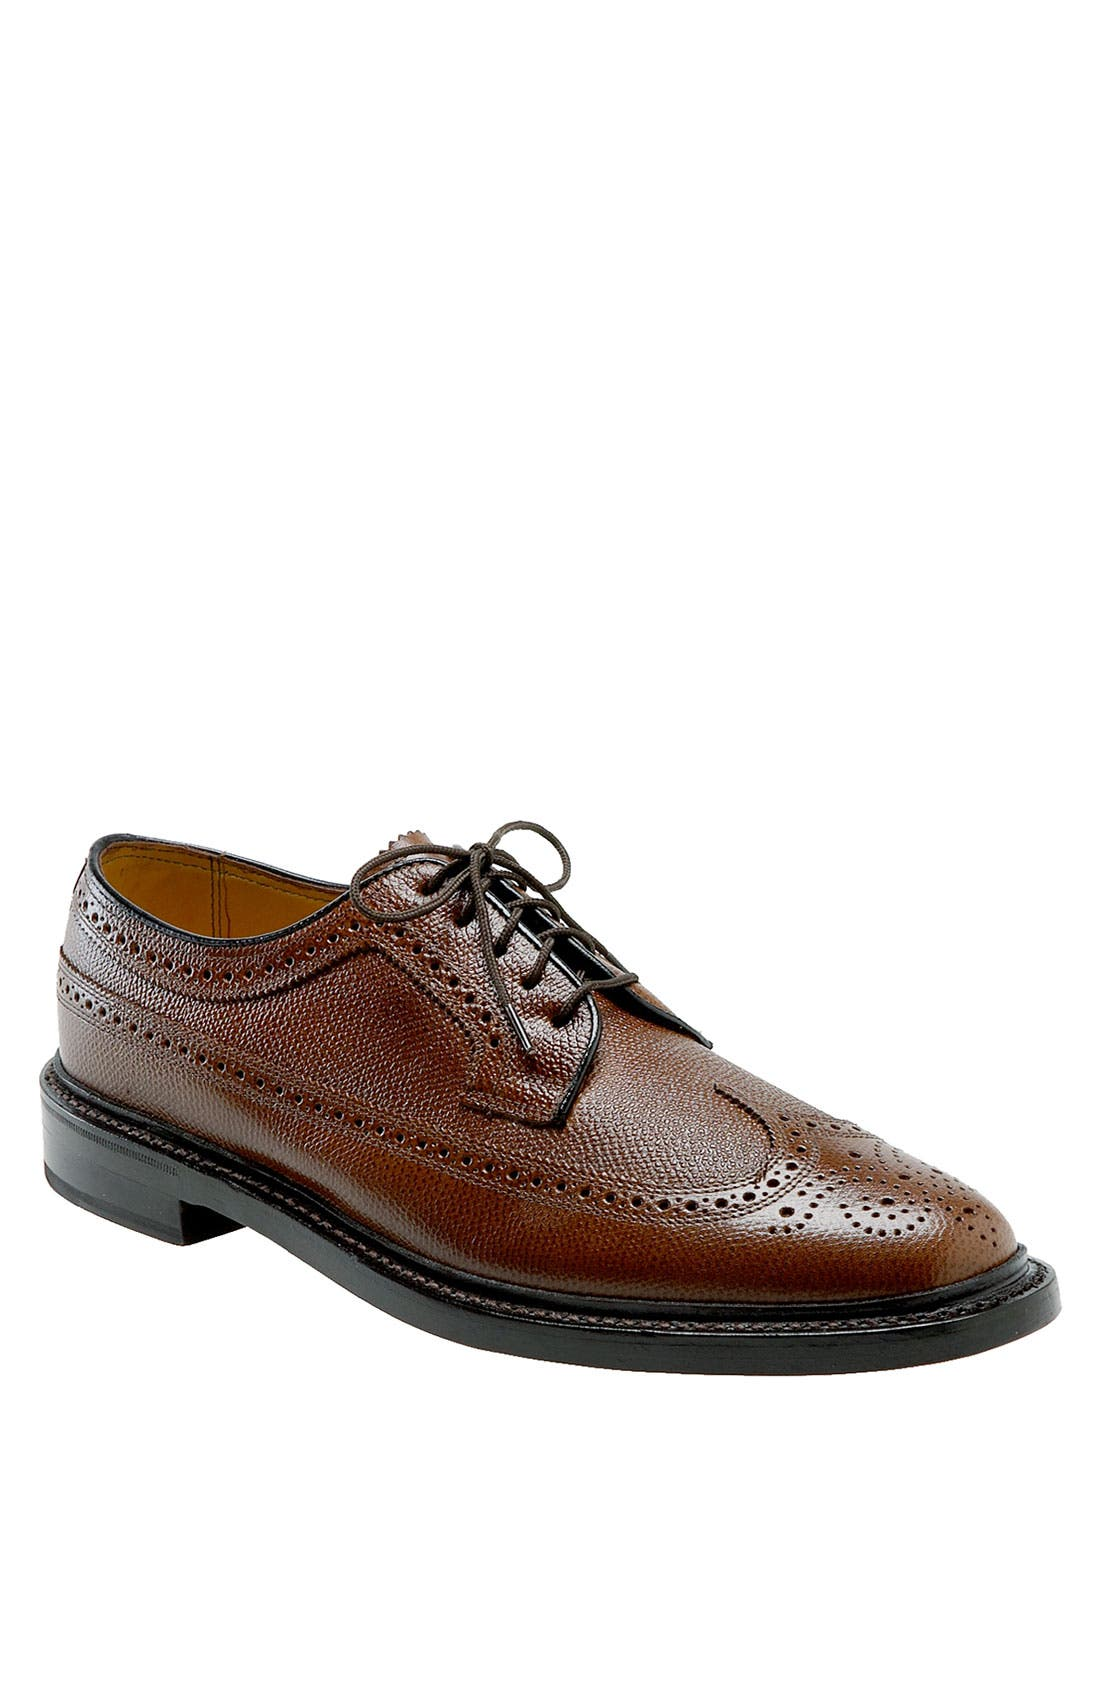 Alternate Image 1 Selected - Florsheim 'Kenmoor' Wingtip Oxford